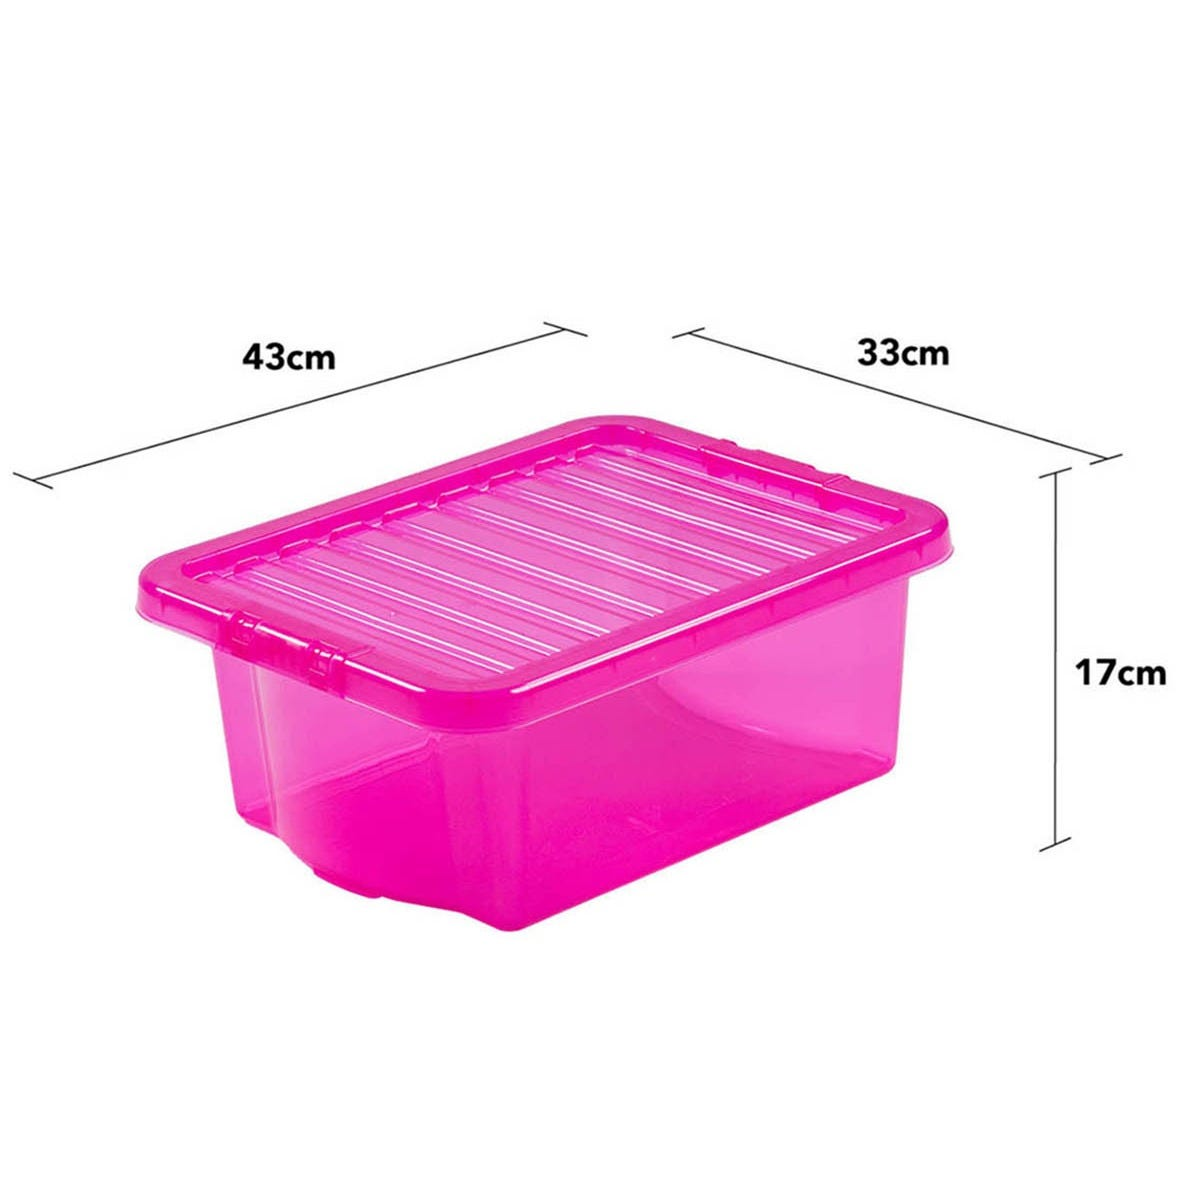 Wham Crystal Pink Storage Box with Lid 16L - Set of 5